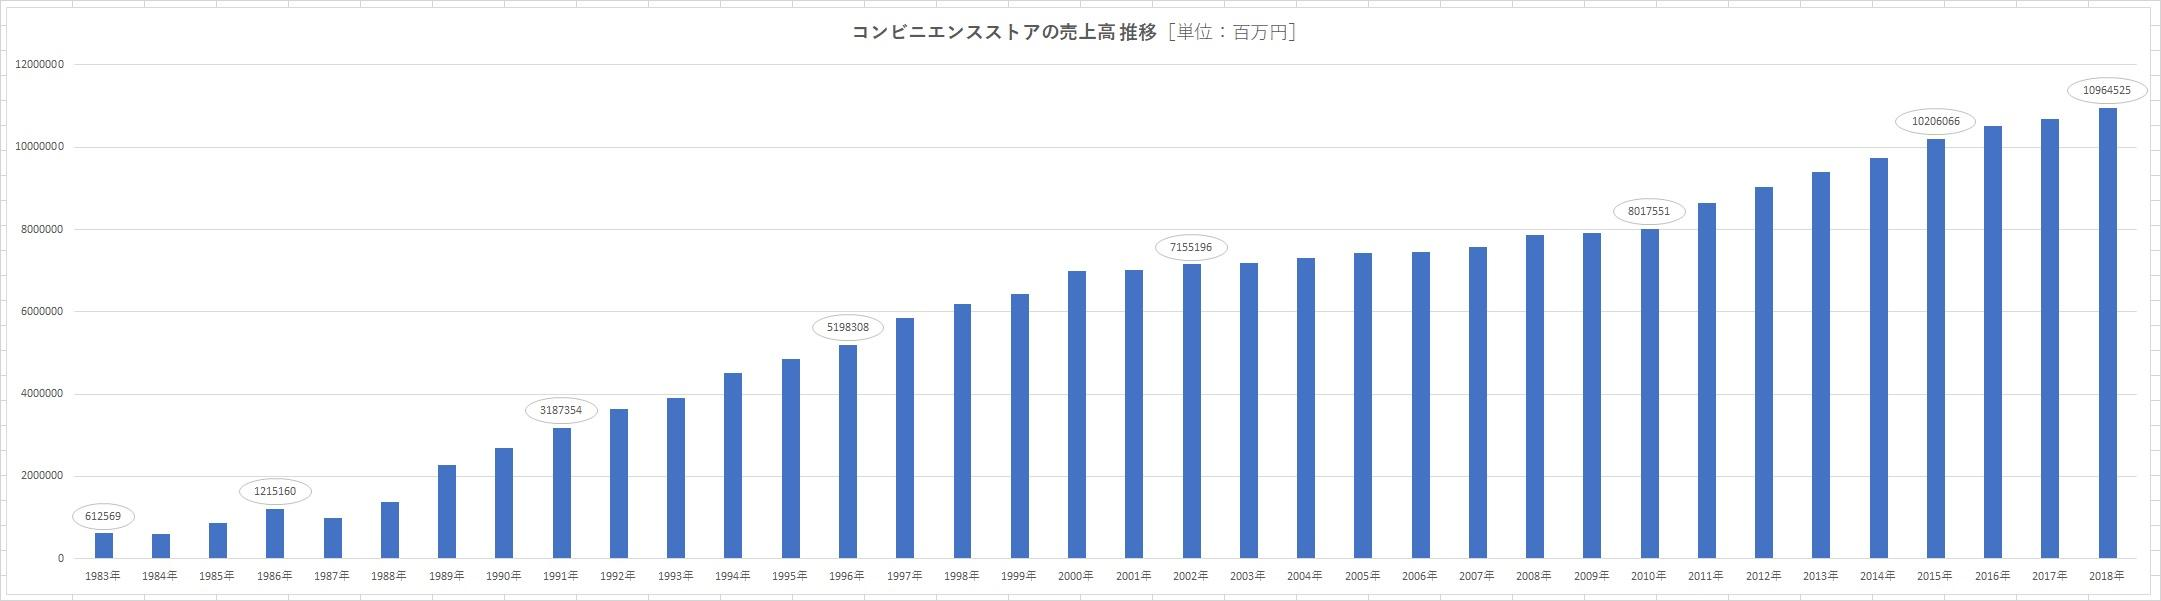 http://tablo.jp/discover/img/graph_03.jpg